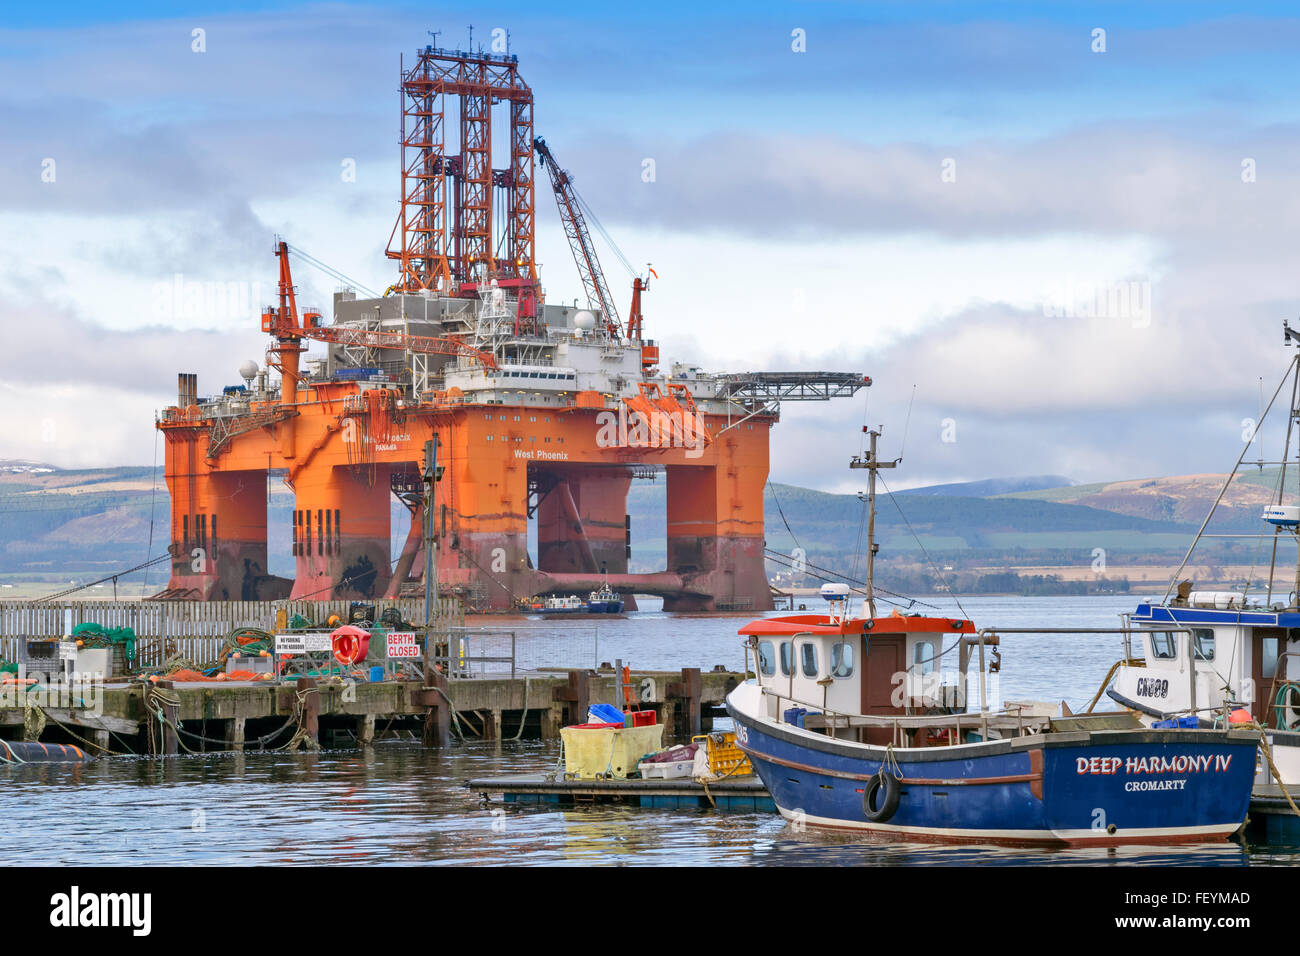 NORTH SEA OIL RIG WEST PHOENIX TOWERS OVER FISHING BOATS MOORED IN CROMARTY HARBOUR CROMARTY FIRTH SCOTLAND Stock Photo